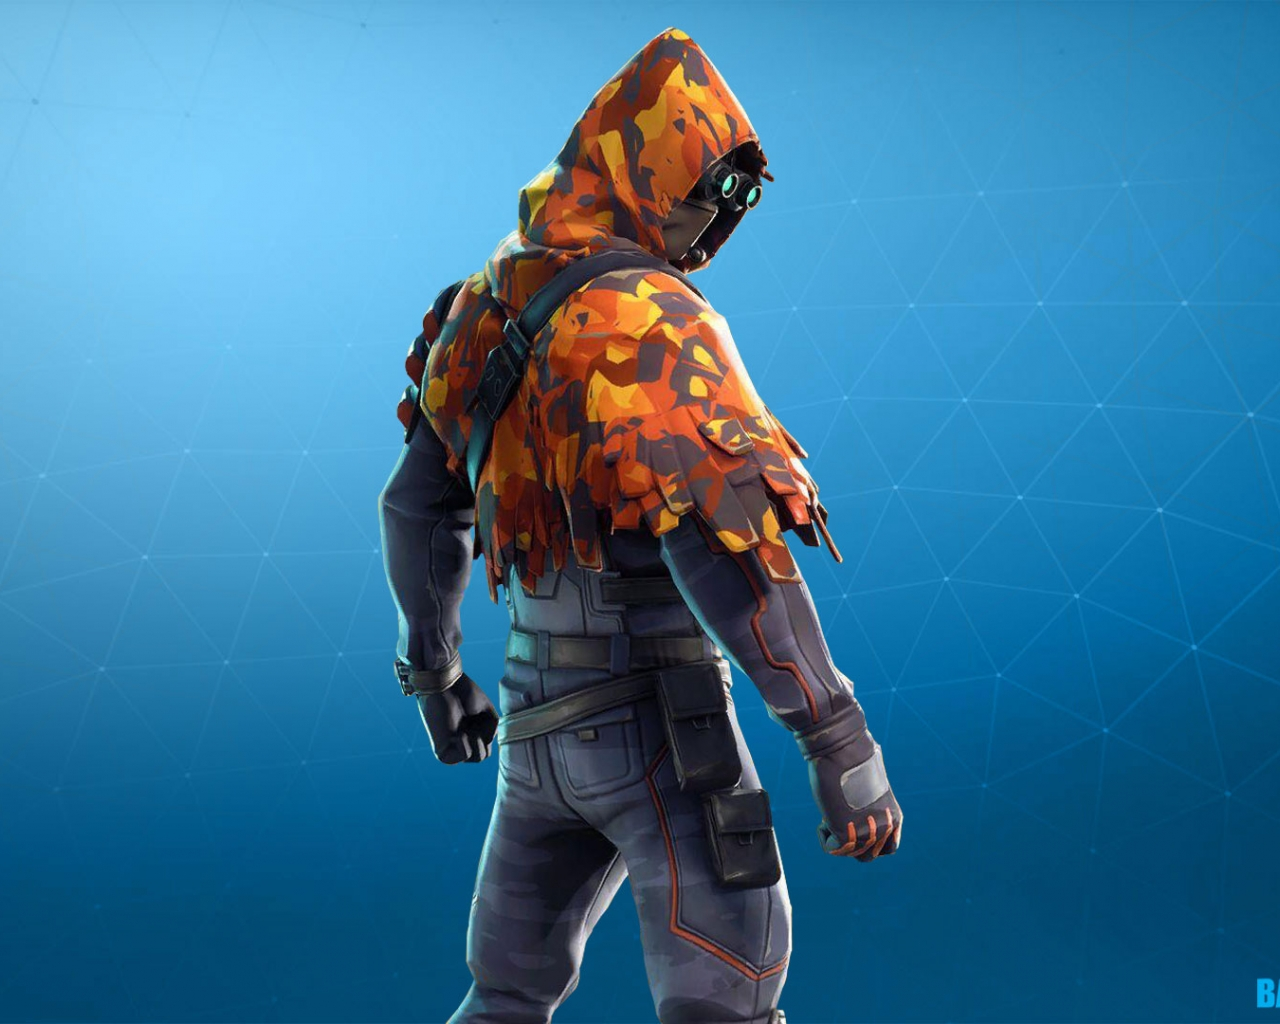 download New Ranged Recon Set Longshot and Insight Fortnite 1280x1024